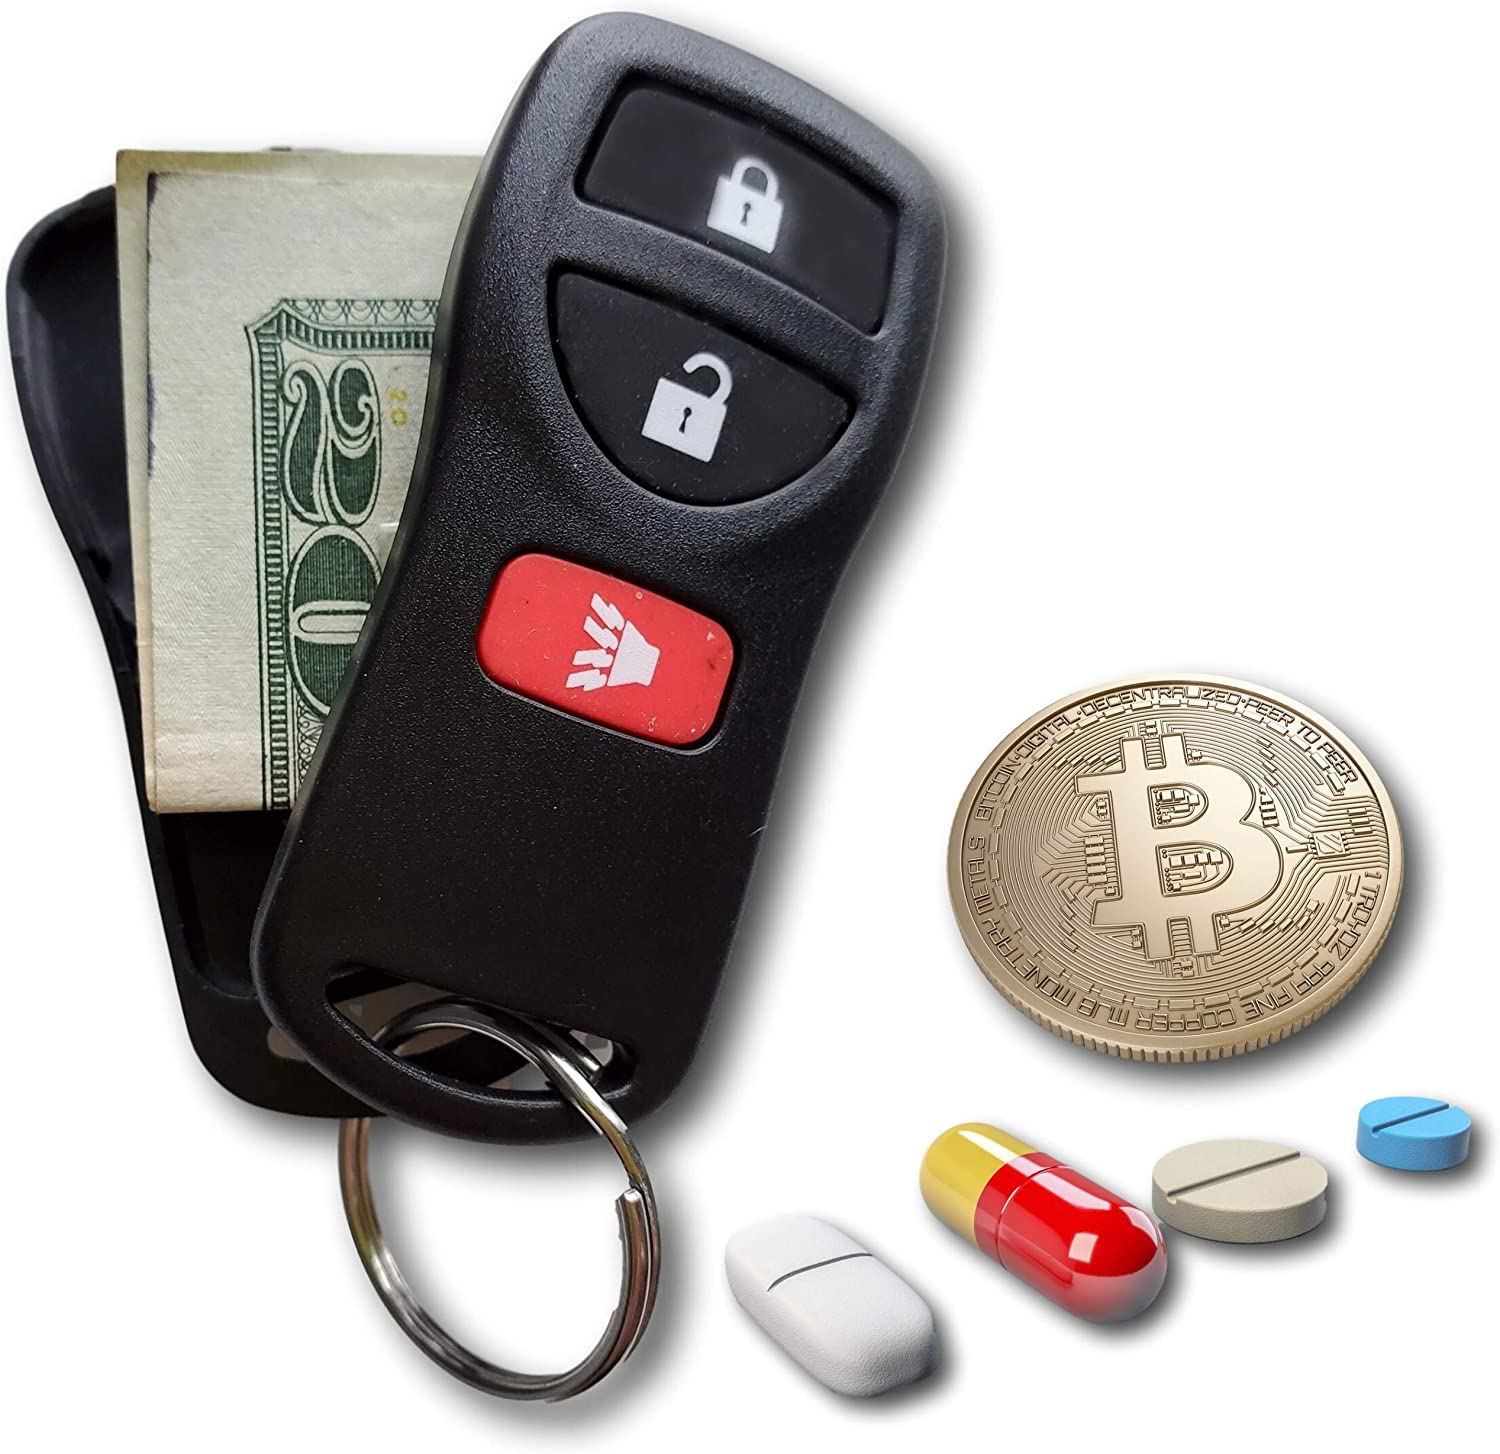 Key Diversion Safe by Stash-it, Hidden Secret Compartment, Stash Box, Discreet Decoy Car Key Fob to Hide and Store Money at Festivals and While Traveling, Valuables